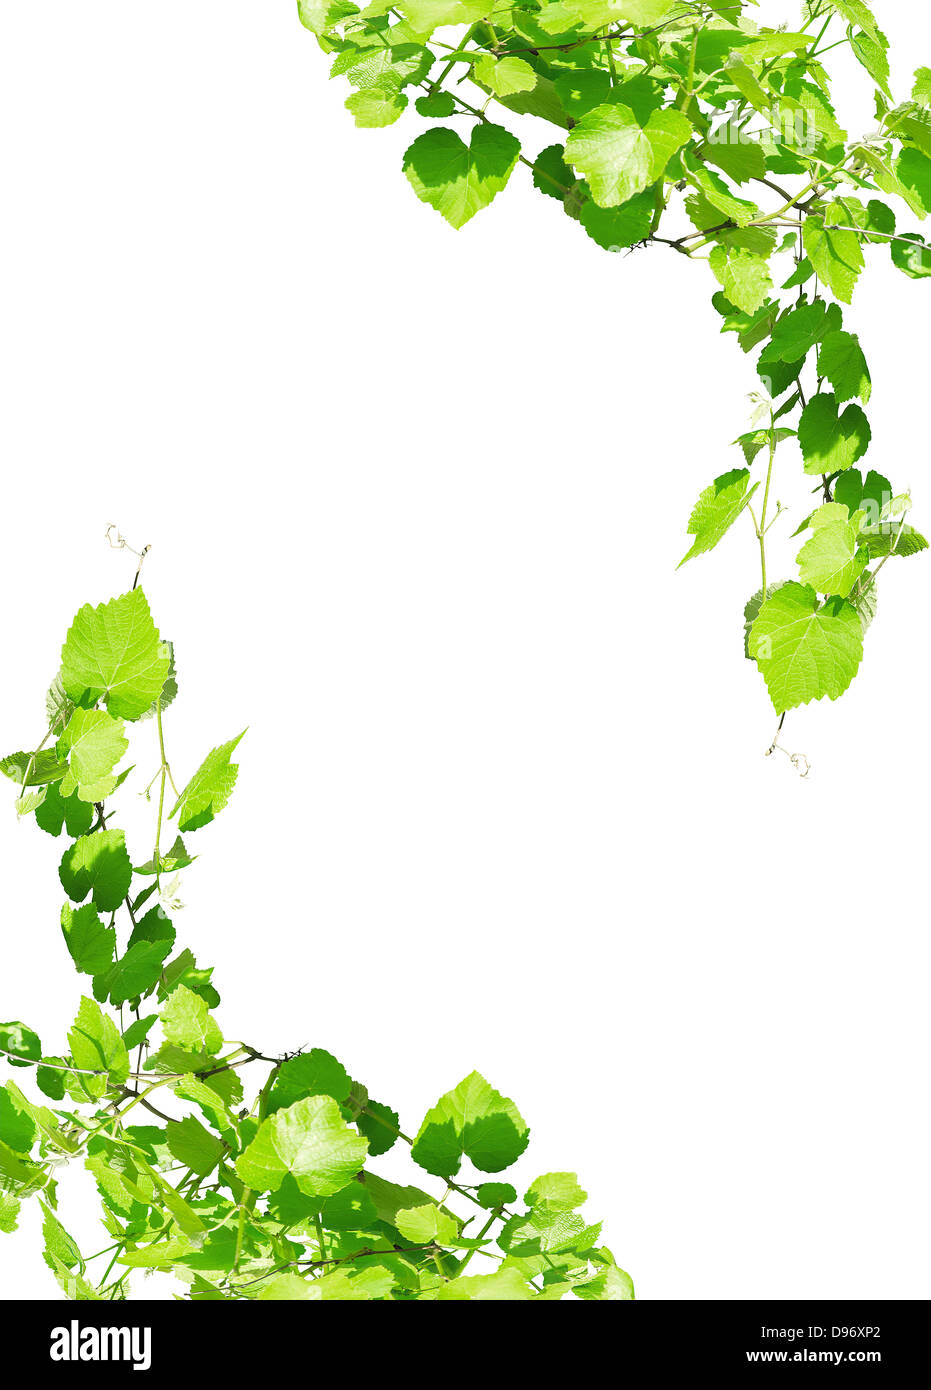 Young Hanging Grape Leaves On The Sun Frame Isolated On White Stock Photo Alamy